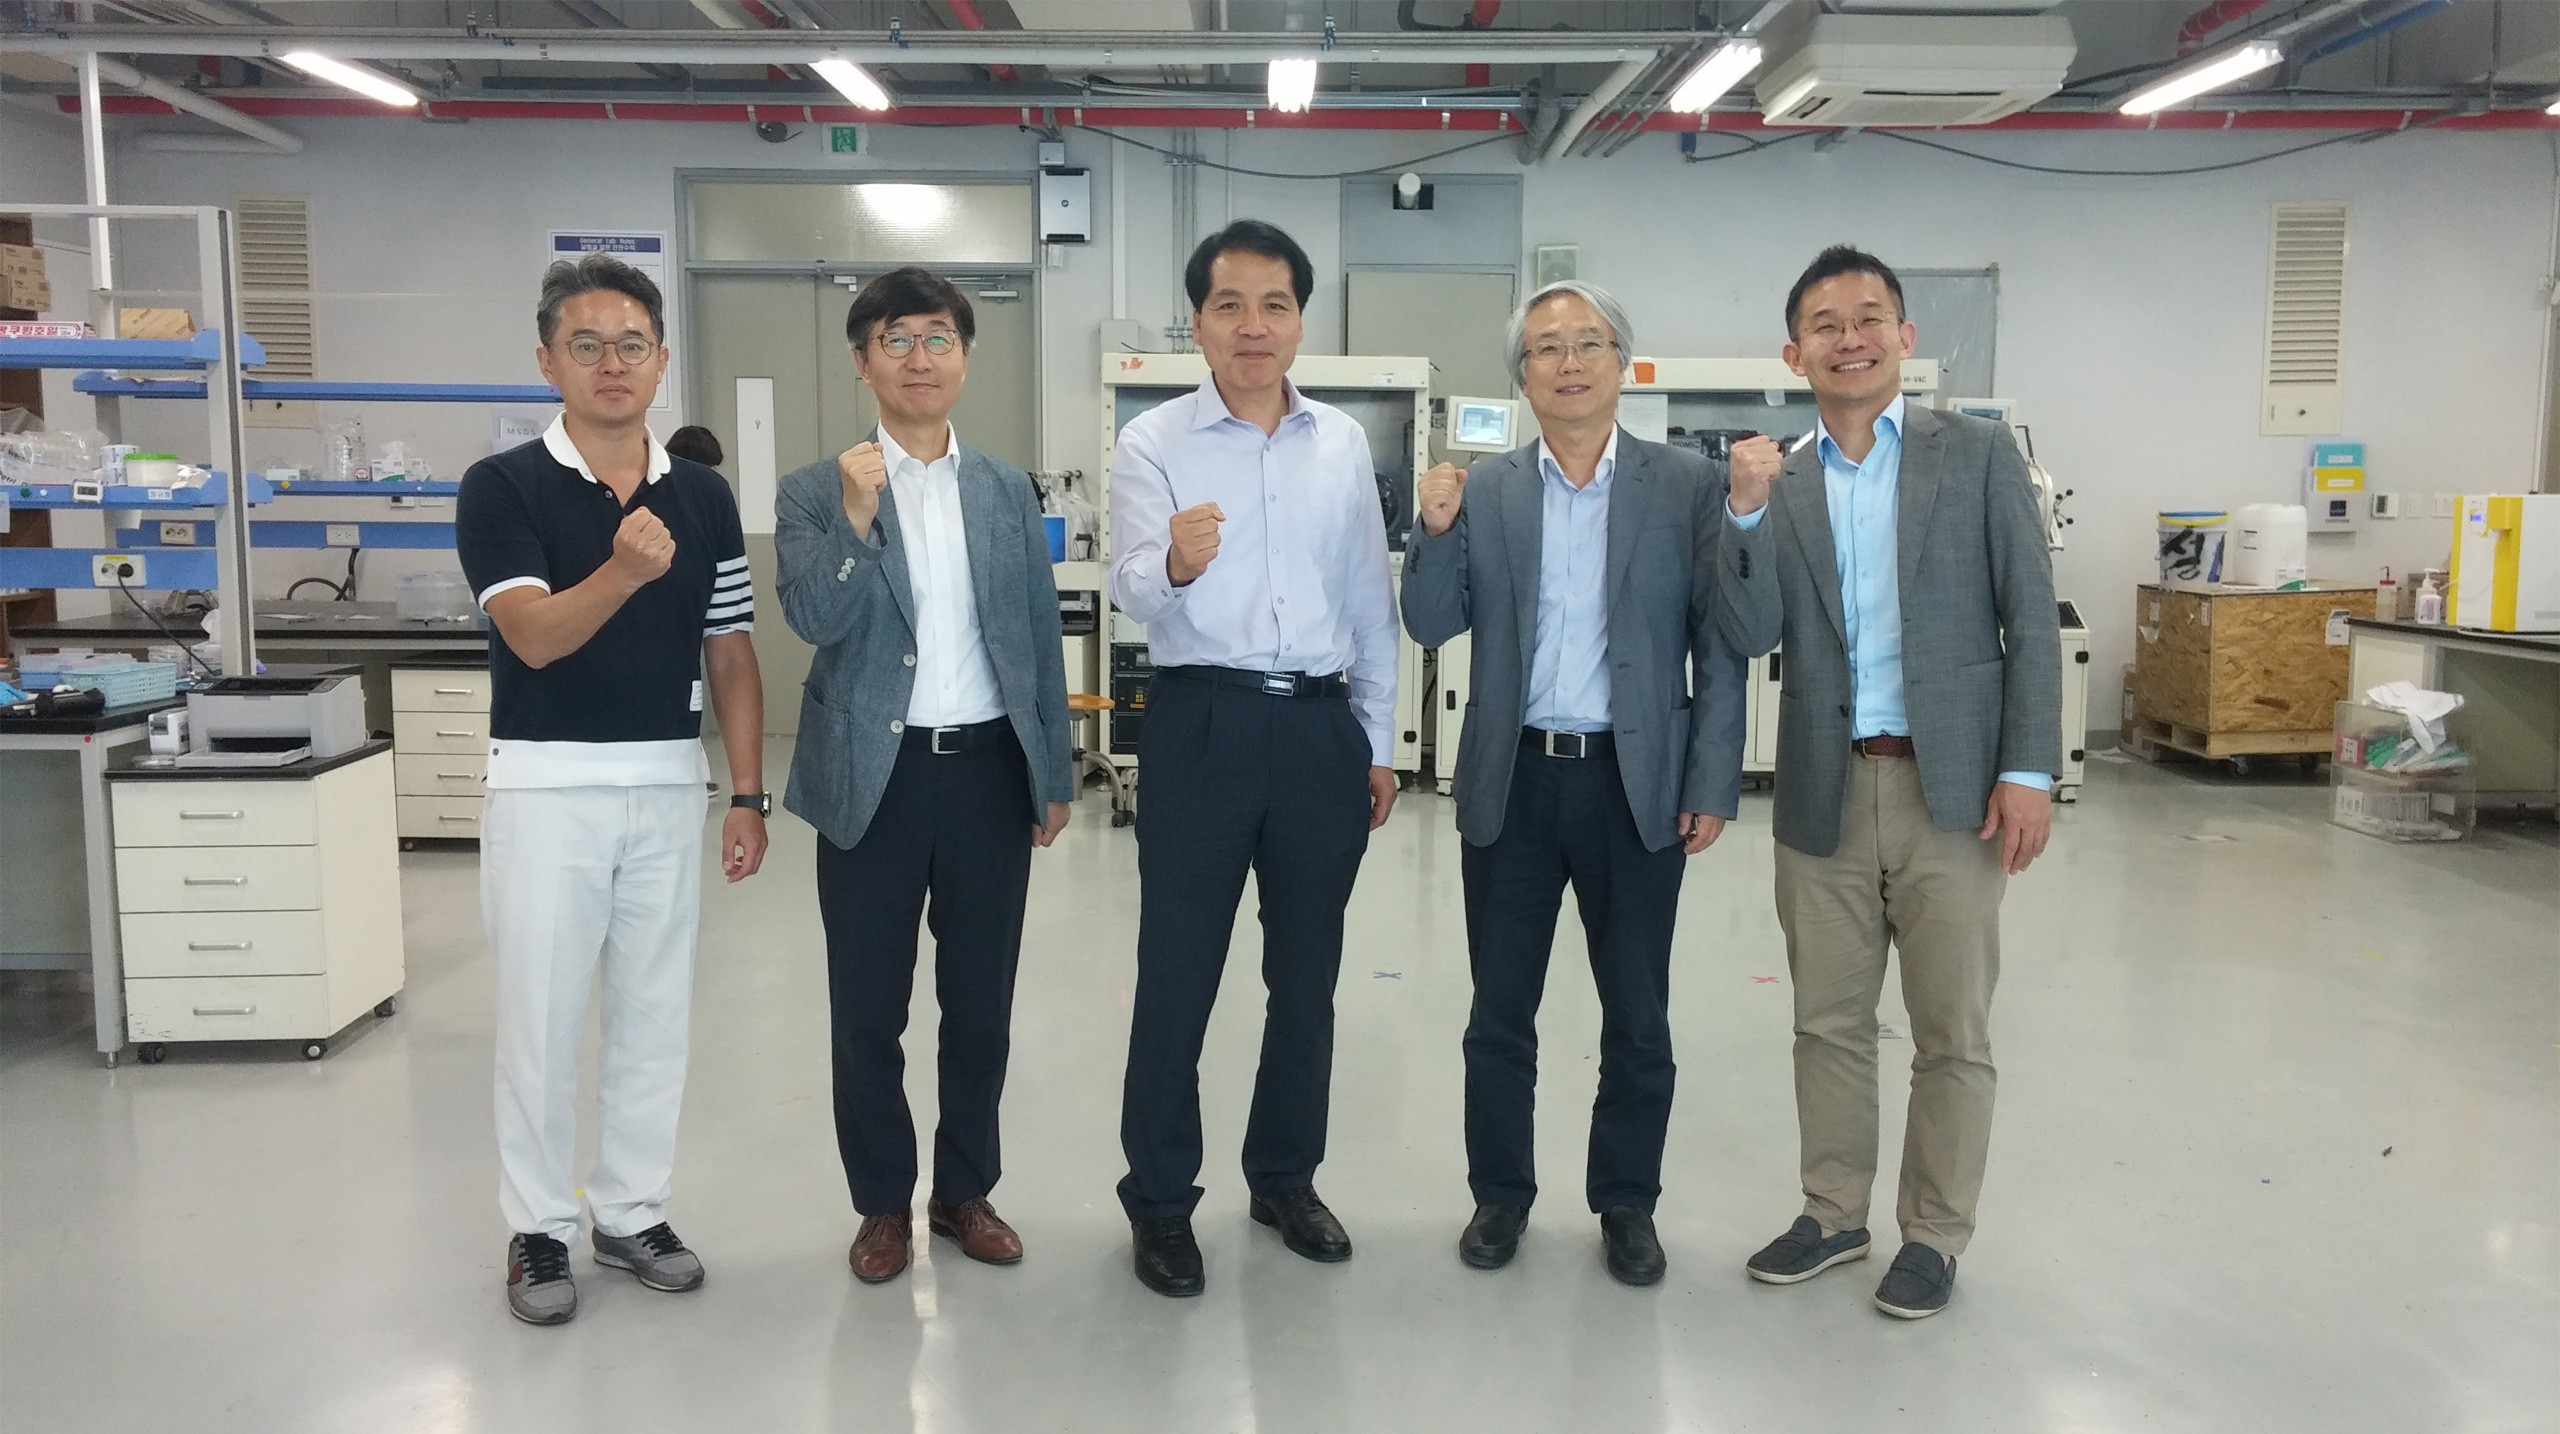 Image: Senior managers of Frontier Energy Solution: Hyun Suk Jung , Nam-Gyu Park,  Sang-Il Seok,  Mansoo Choi, and Ki Tae Nam